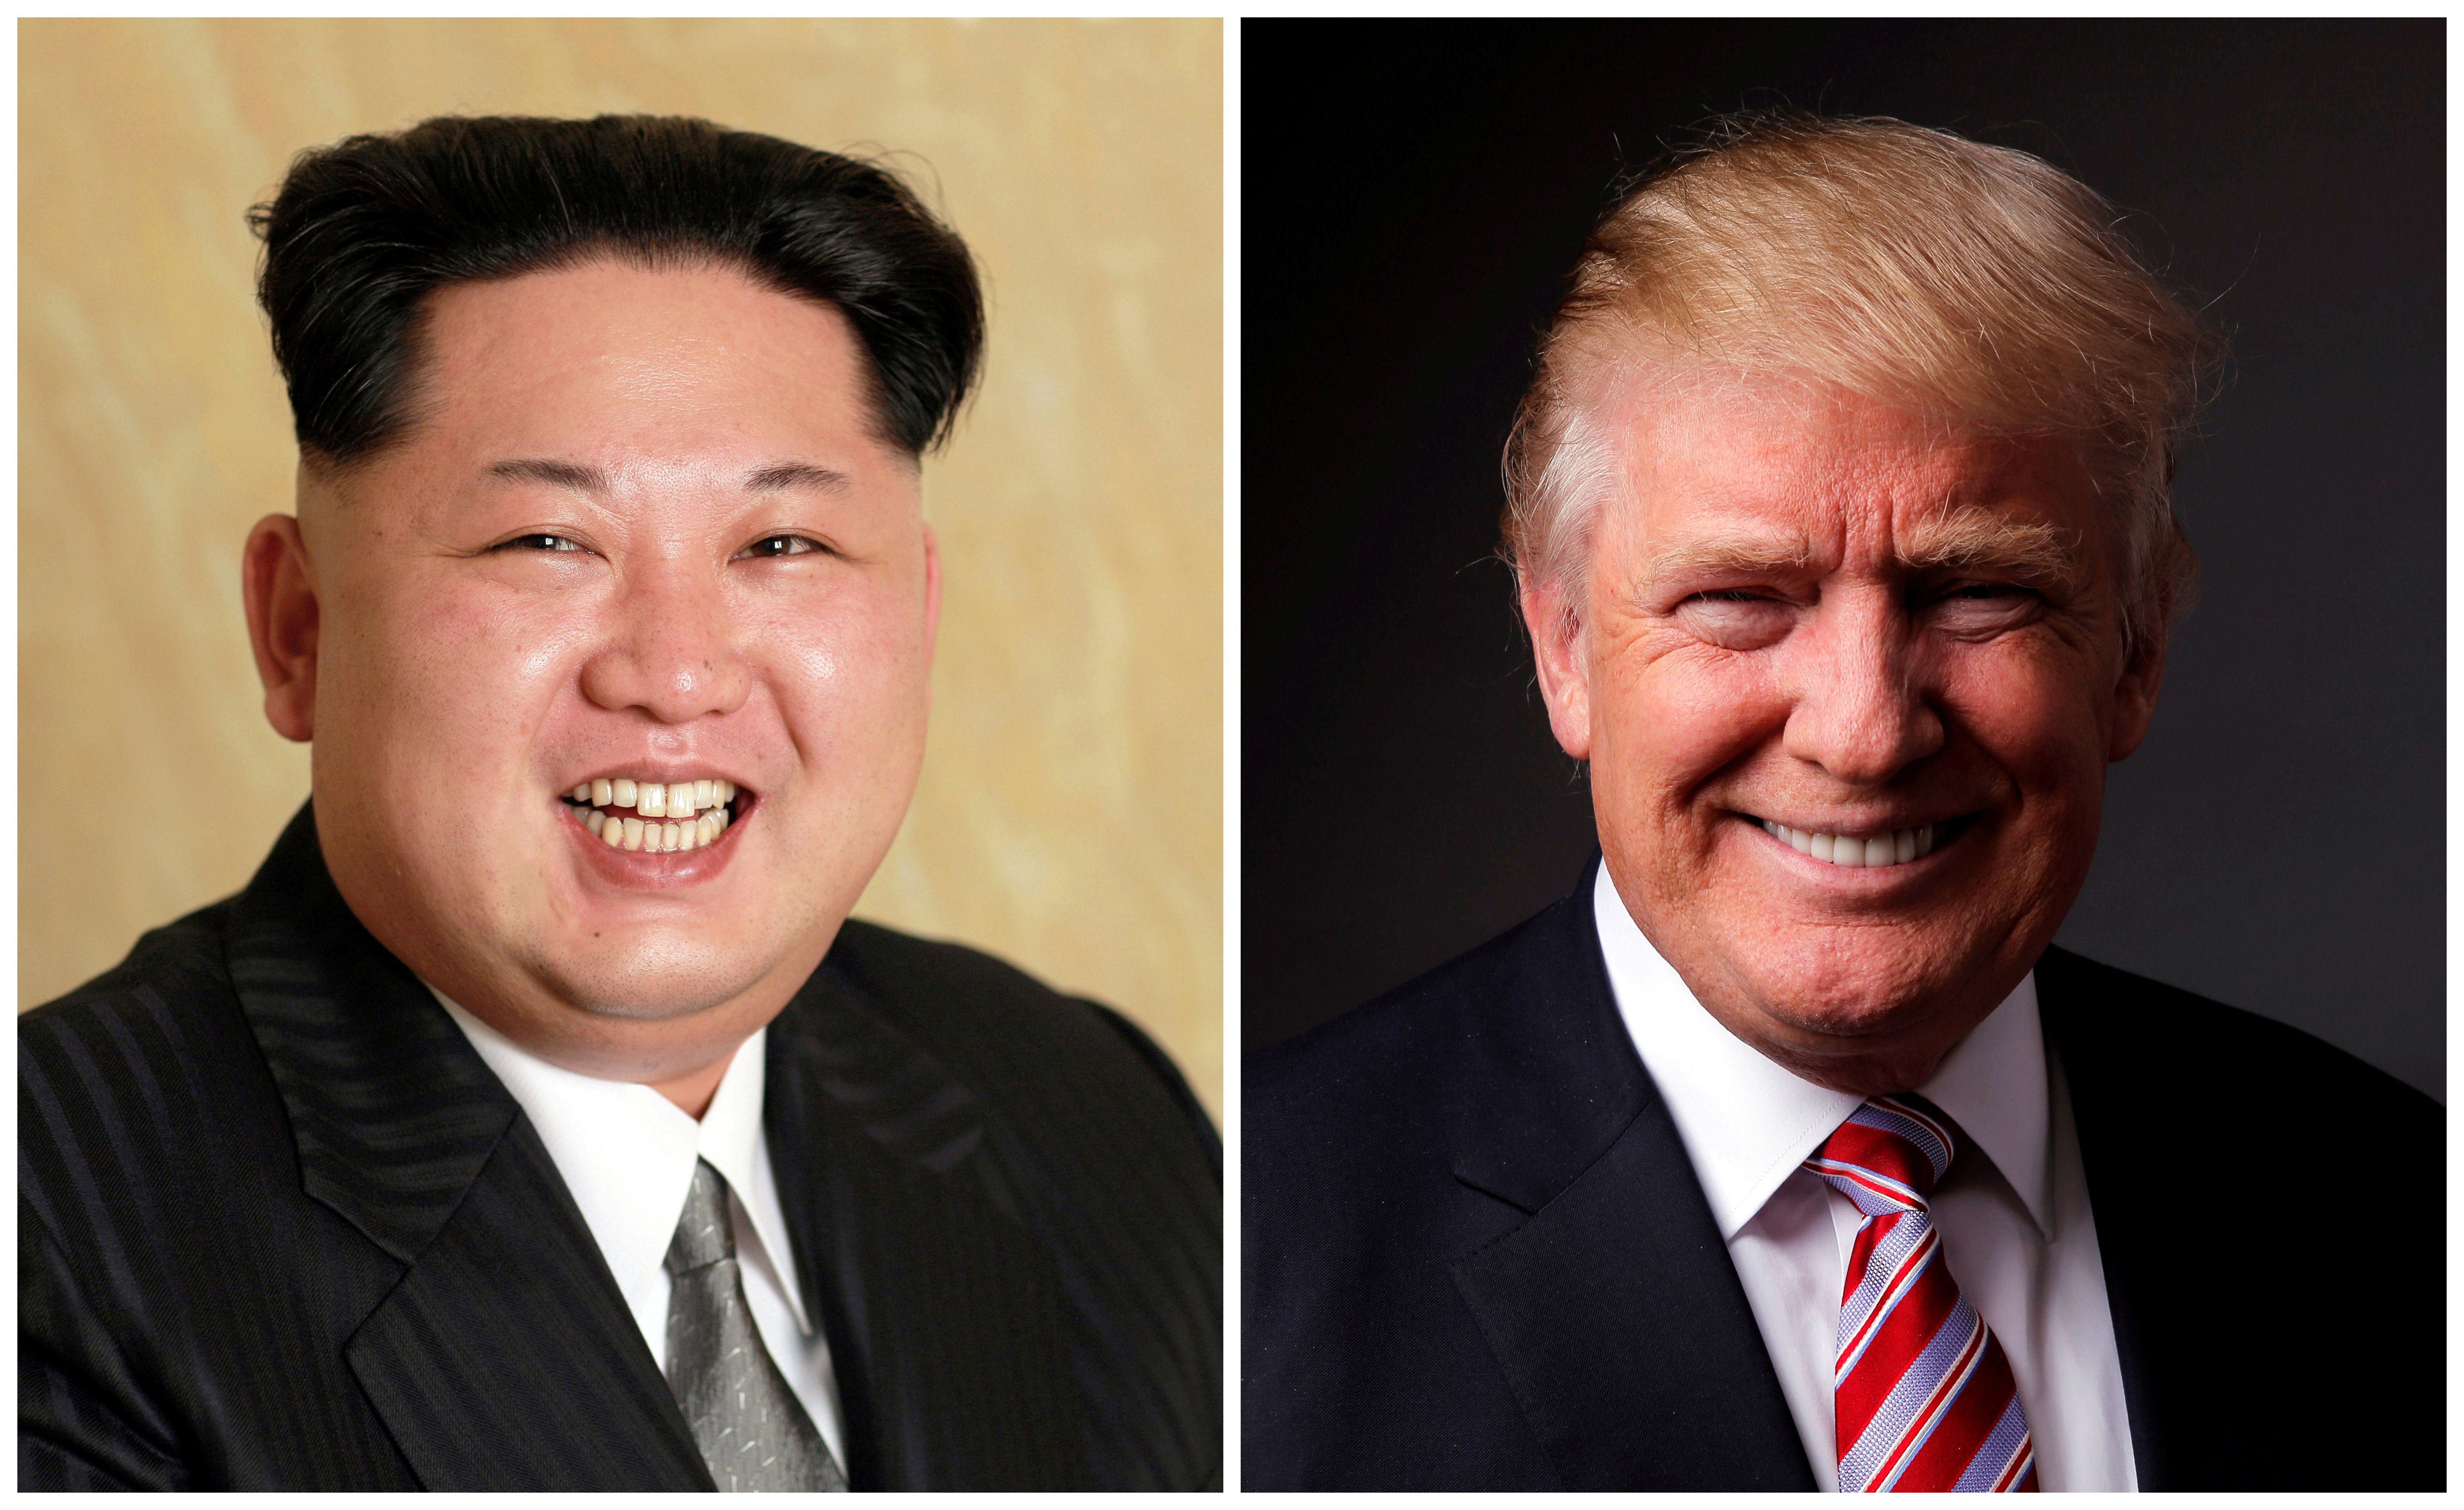 A combination photo shows a Korean Central News Agency (KCNA) handout of North Korean leader Kim Jong Un released on May 10, 2016, and Republican U.S. presidential candidate Donald Trump posing for a photo after an interview with Reuters in his office in Trump Tower, in the Manhattan borough of New York City, U.S., May 17, 2016. REUTERS/KCNA handout via Reuters/File Photo & REUTERS/Lucas Jackson/File Photo ATTENTION EDITORS - THE KCNA IMAGE WAS PROVIDED BY A THIRD PARTY. EDITORIAL USE ONLY. REUTERS IS UNABLE TO INDEPENDENTLY VERIFY THIS IMAGE. NO THIRD PARTY SALES. NOT FOR USE BY REUTERS THIRD PARTY DISTRIBUTORS. SOUTH KOREA OUT. NO COMMERCIAL OR EDITORIAL SALES IN SOUTH KOREA.